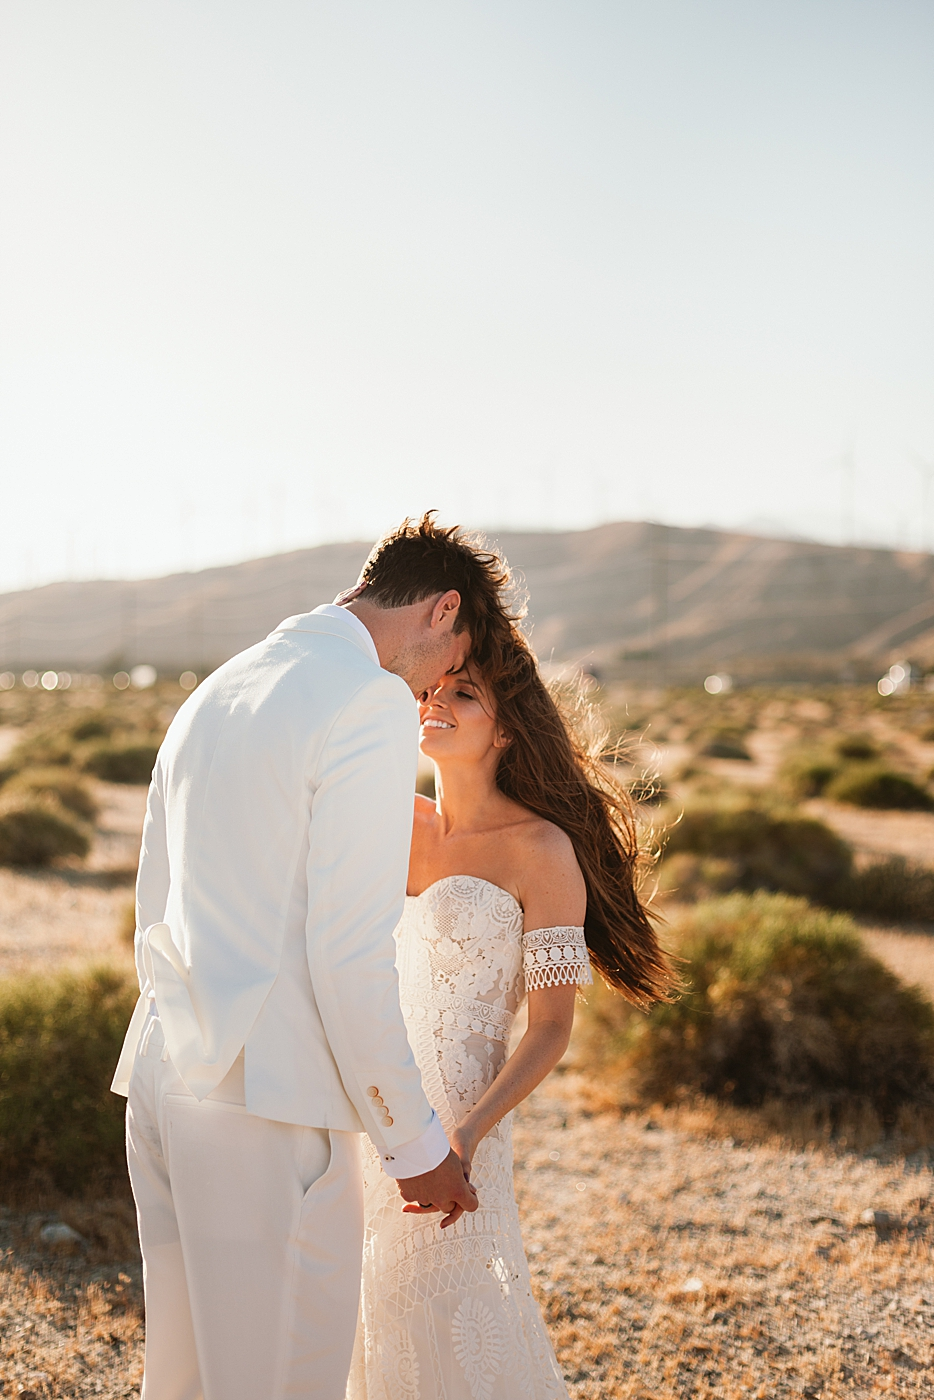 adventurous couple,california,canada,couple,desert elopement,desert wedding,destination,destination elopement,destination photographer,destination wedding,elope,elopement,josie nicole,palm springs,palm springs elopement,photographer,travel,wedding,wedding photography,windy adventure,workshop,